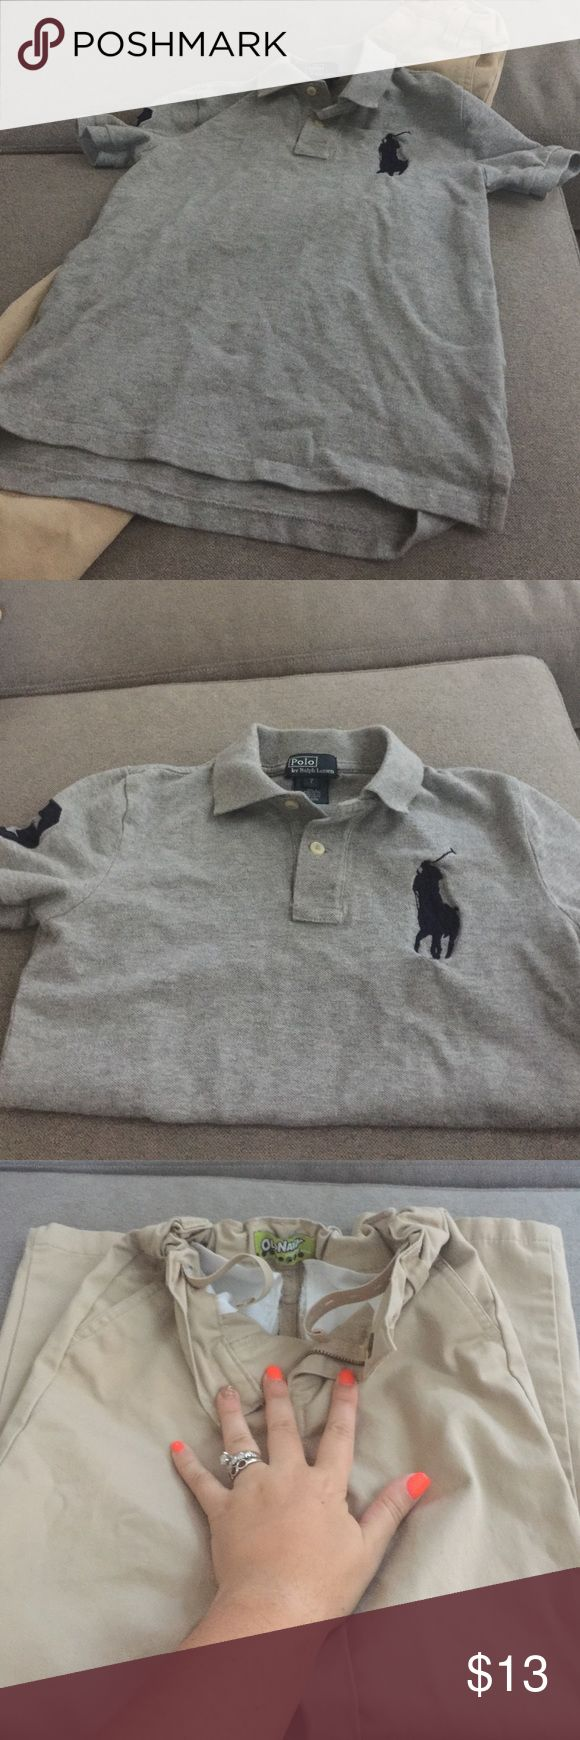 Boys school uniform bundle Boys tan Old Navy uniform pants size 7 stain on one pant leg but not very noticeable once worn. Otherwise great condition Boys Ralph Lauren polo also great condition no stains size 7. Polo by Ralph Lauren Shirts & Tops Polos